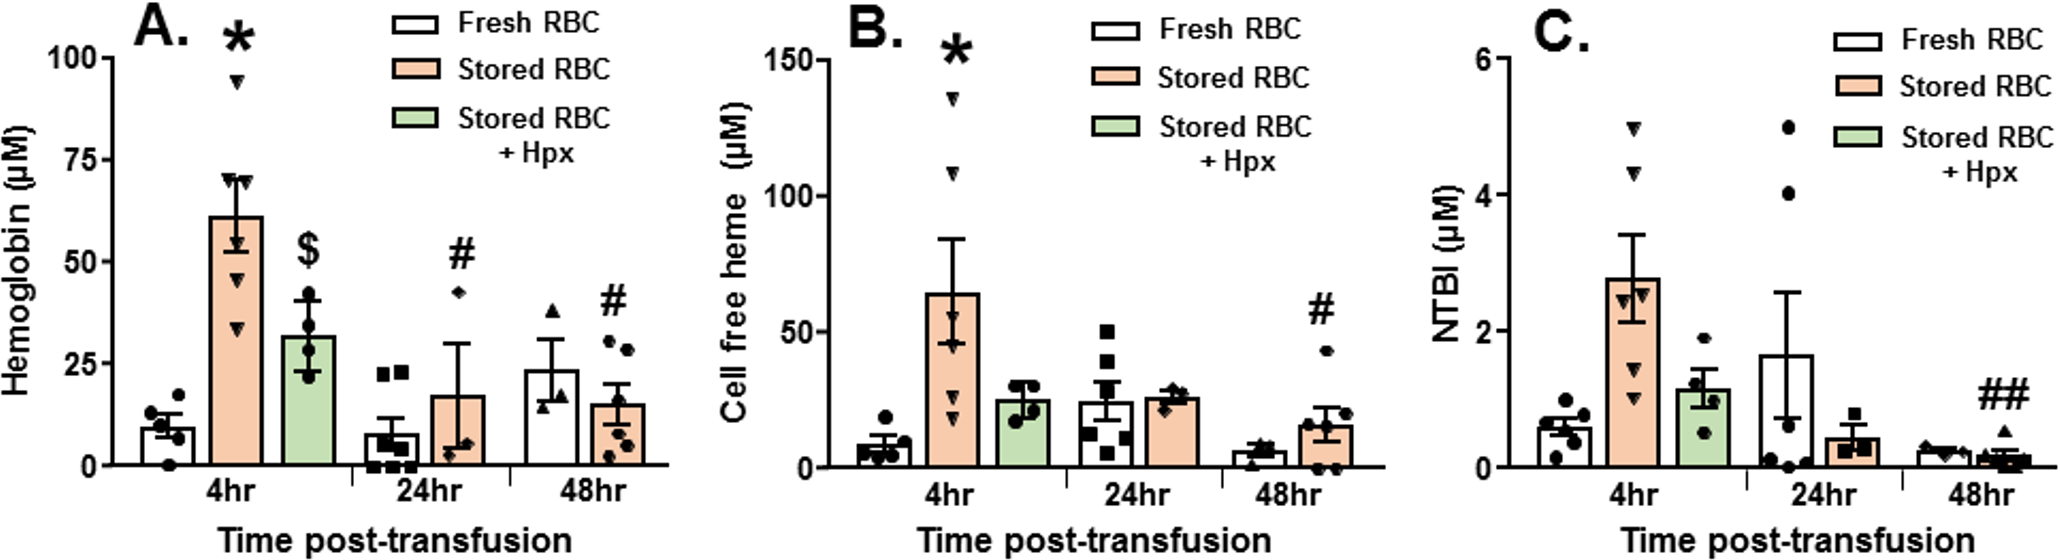 Changes in plasma hemoglobin, heme, and non-transferrin-bound iron (NTBI) after trauma hemorrhage (TH) and resuscitation with stored blood.